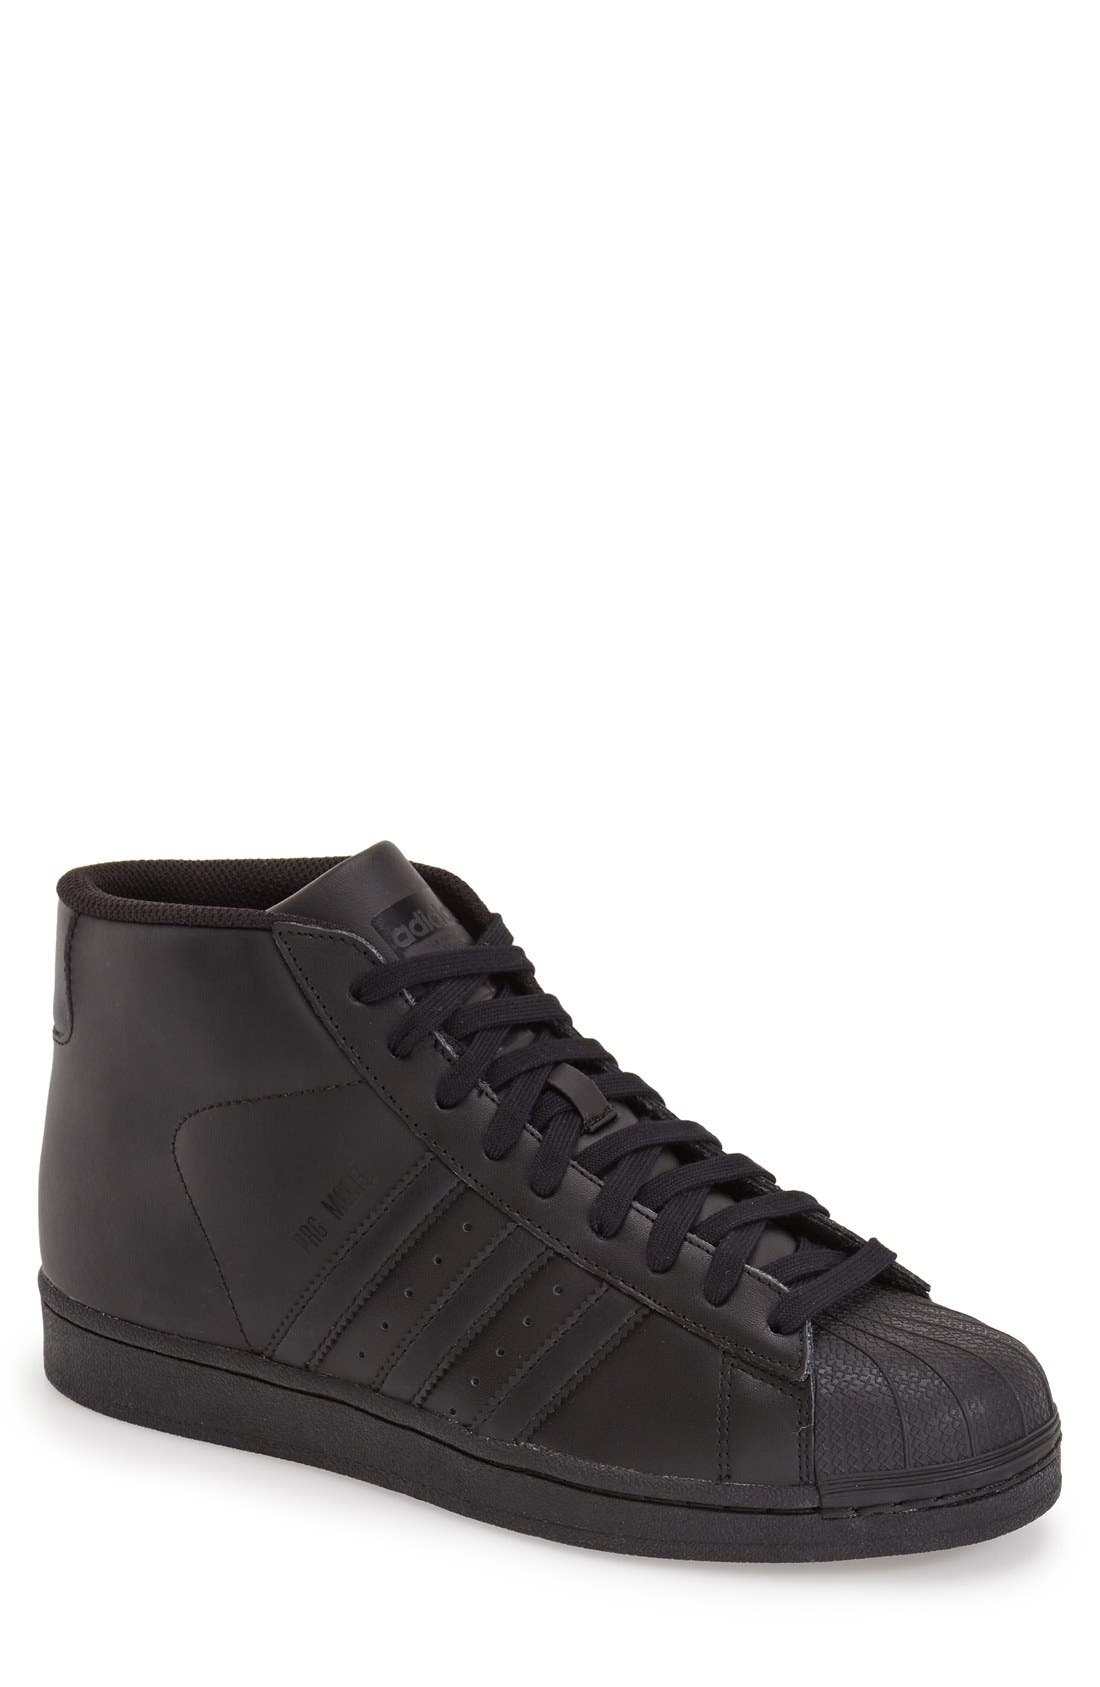 'Pro Model' High Top Sneaker, Main, color, 001